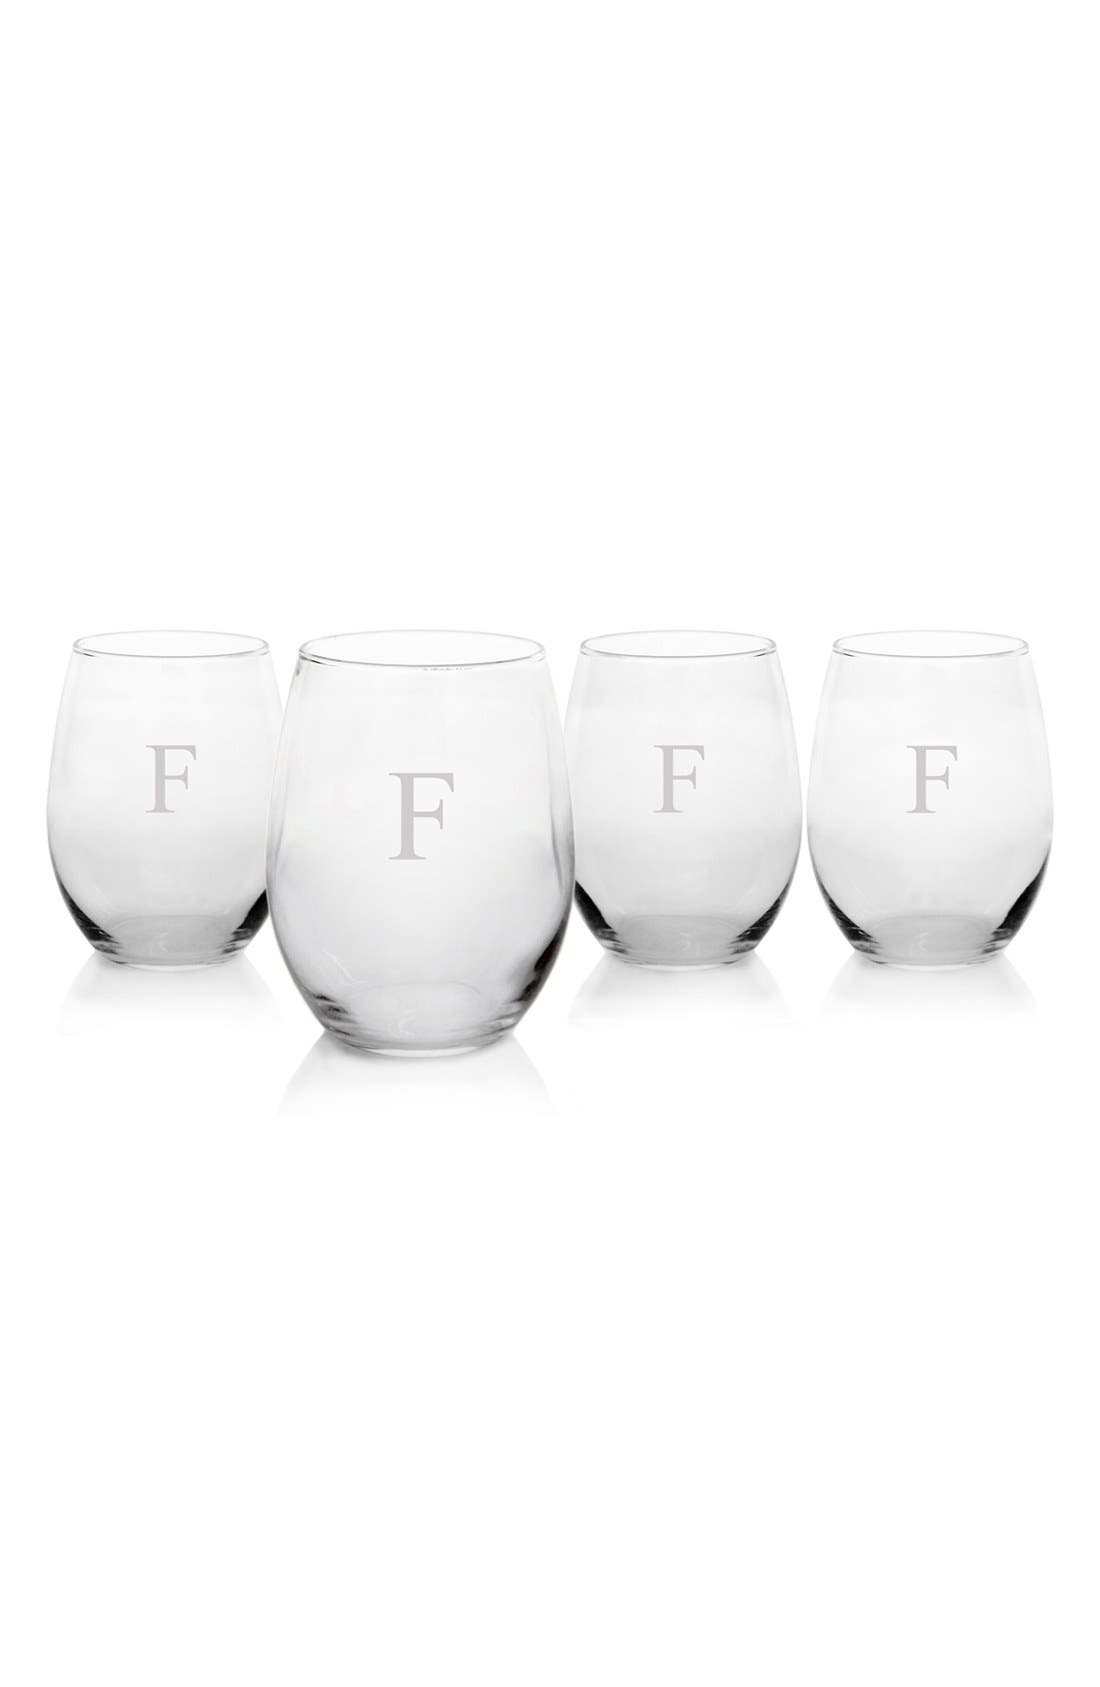 Monogram Set of 4 Stemless Wine Glasses,                             Main thumbnail 1, color,                             Clear-F